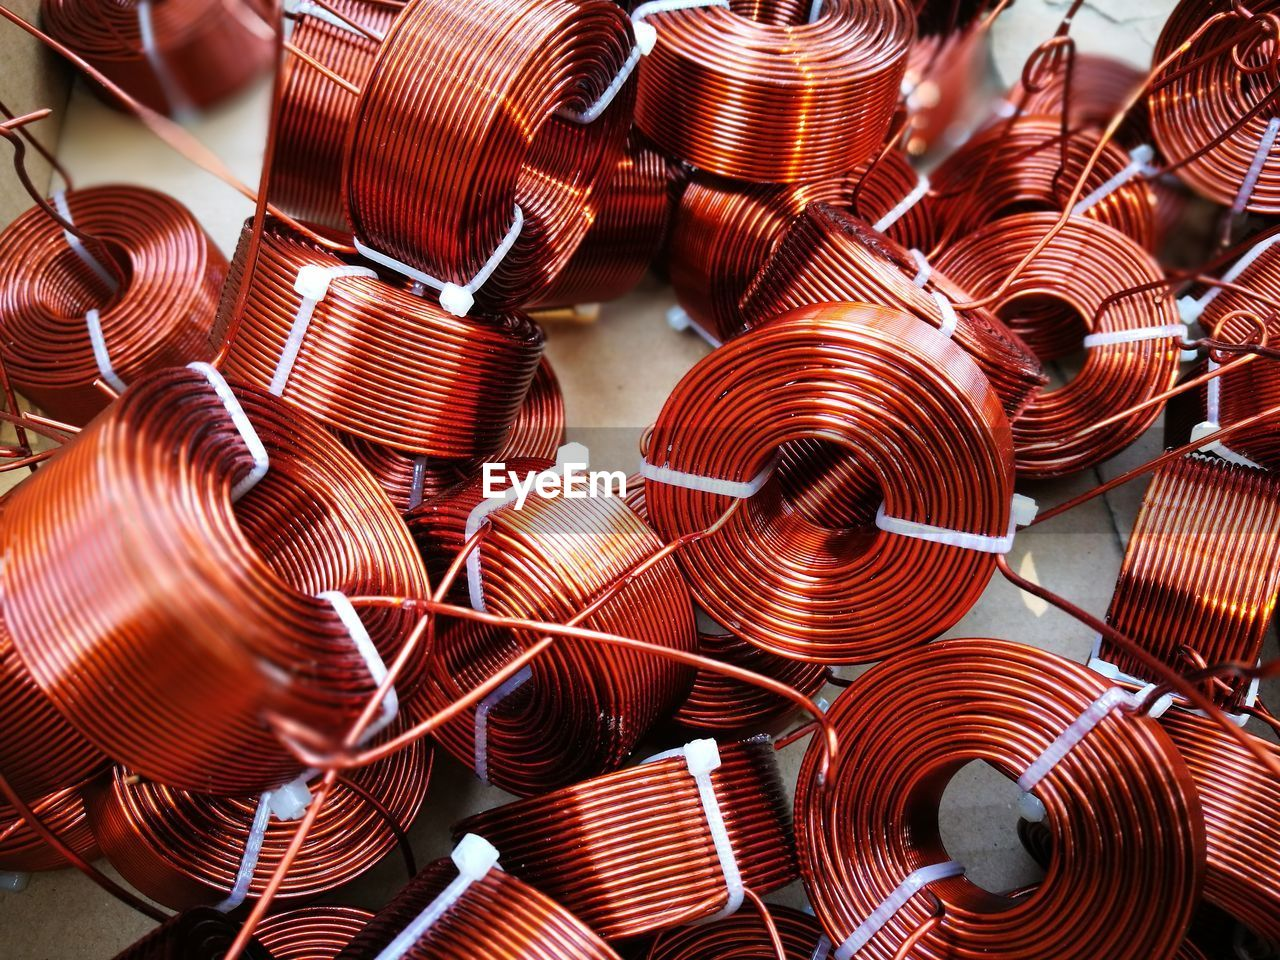 High Angle View Of Rolled Up Metallic Wires